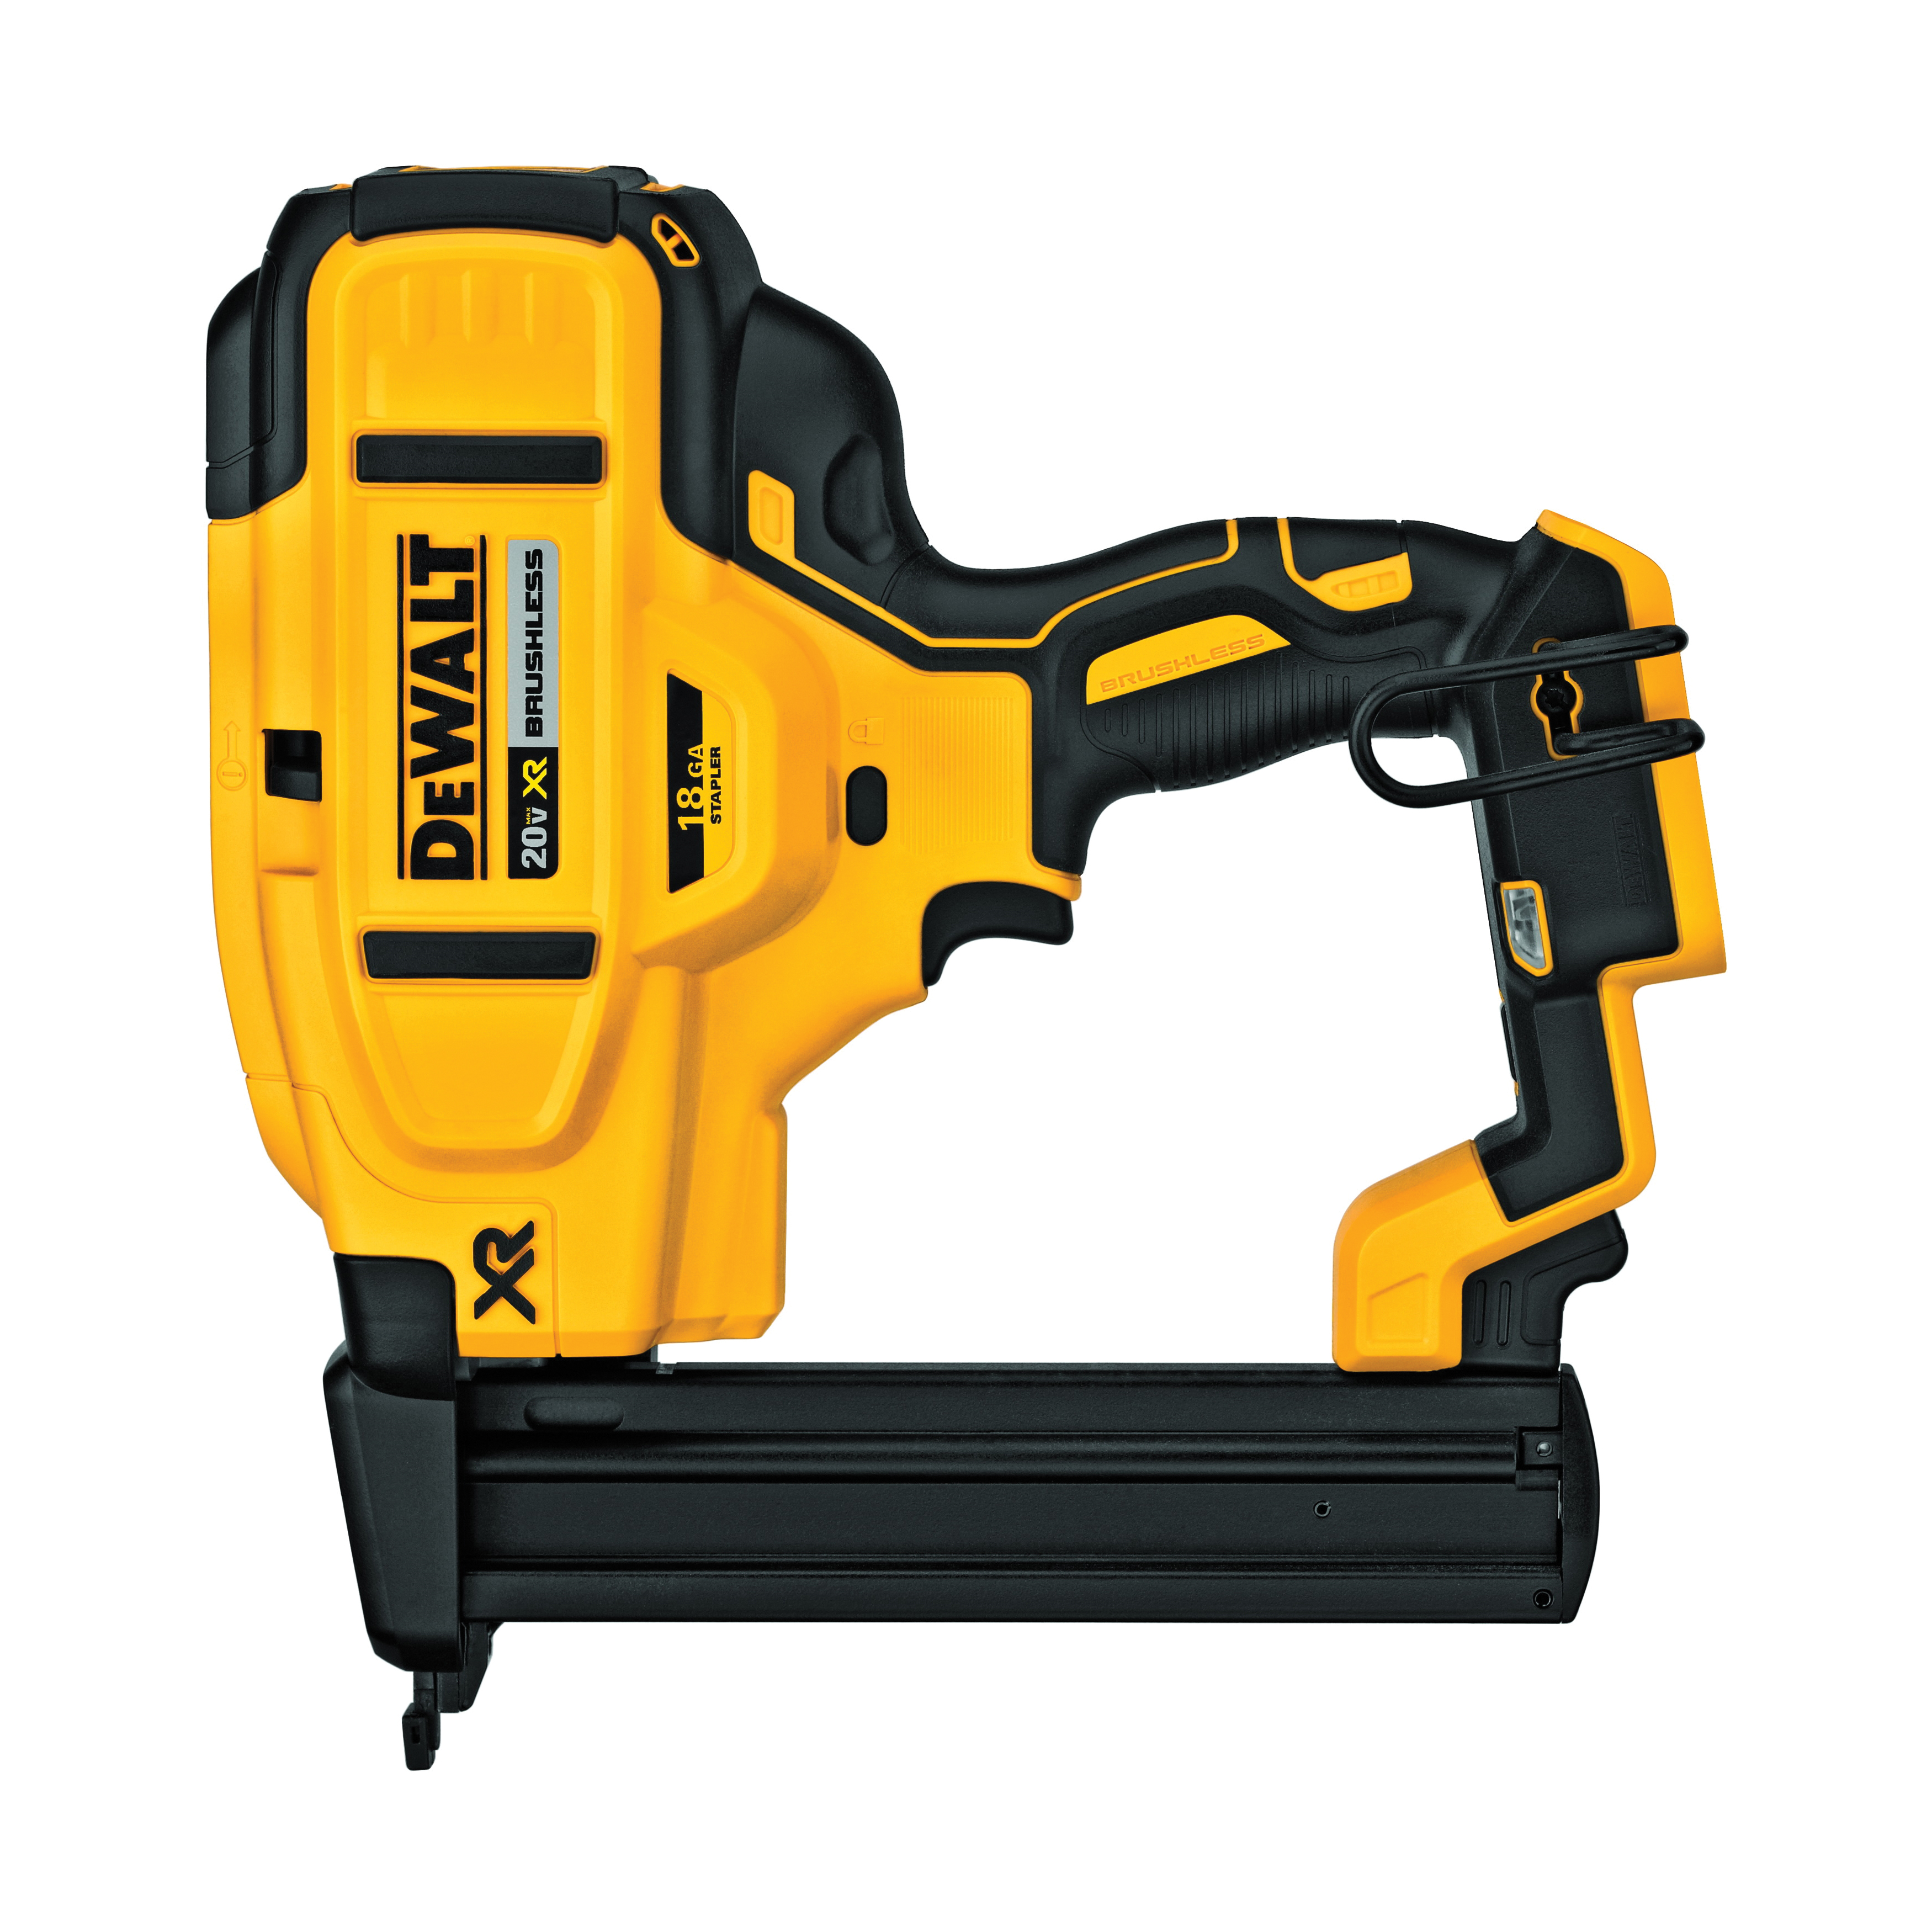 DeWALT® 20V MAX* DCN681B XR™ Cordless Narrow Crown Stapler, 1/4 in Crown, 10.1 in OAL, Lithium-Ion Battery